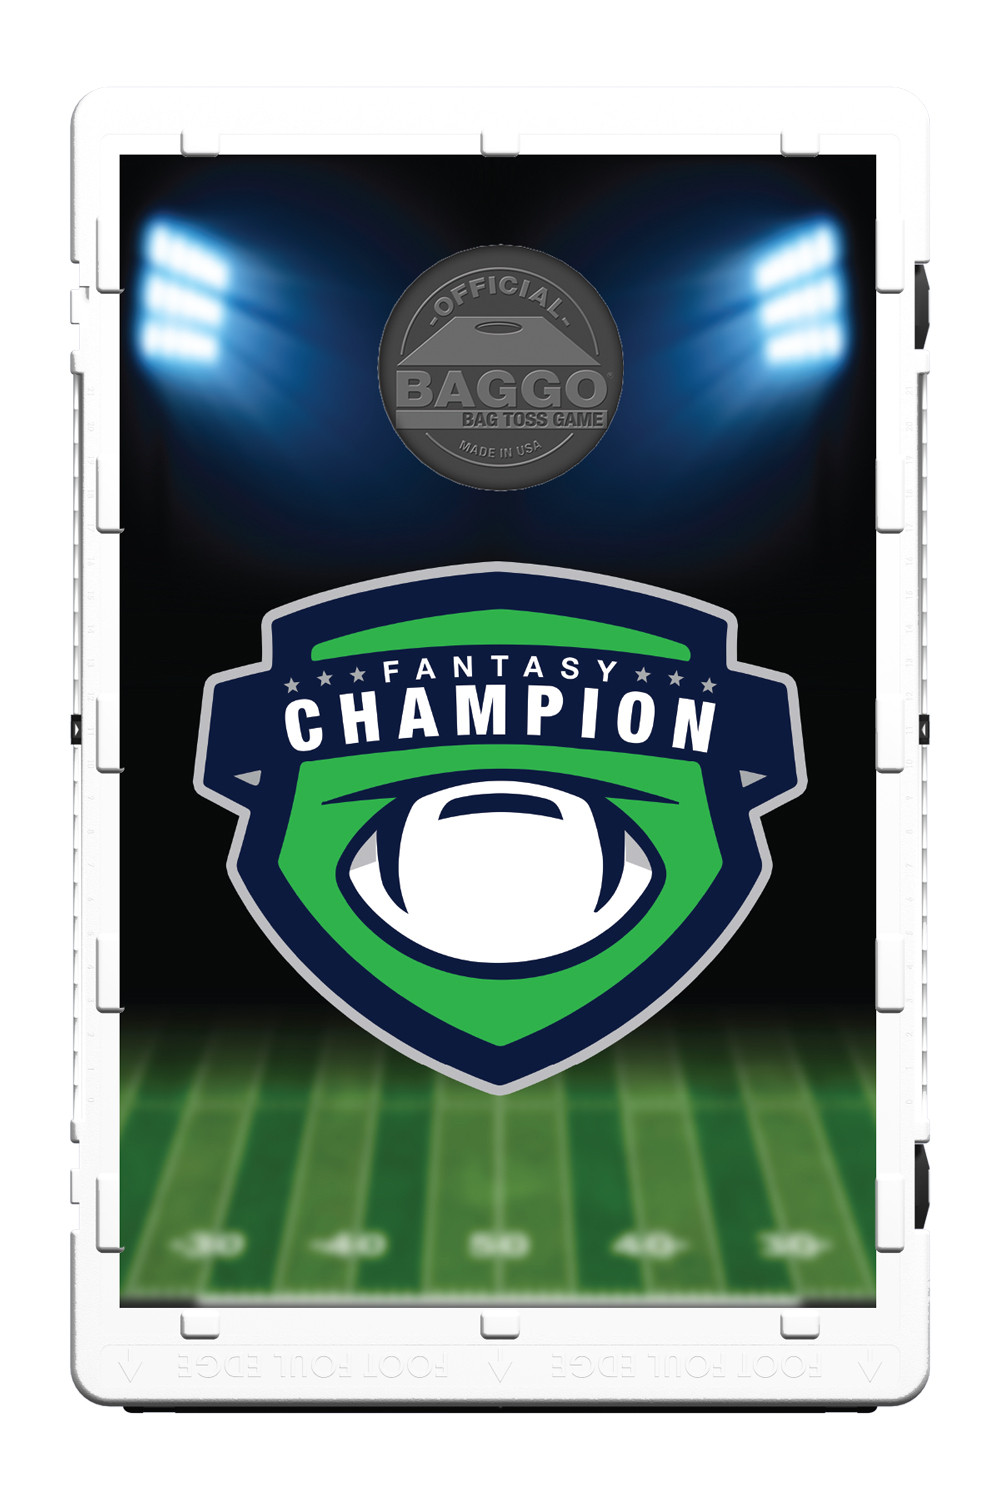 Fantasy Football Champion Screens (only) by Baggo